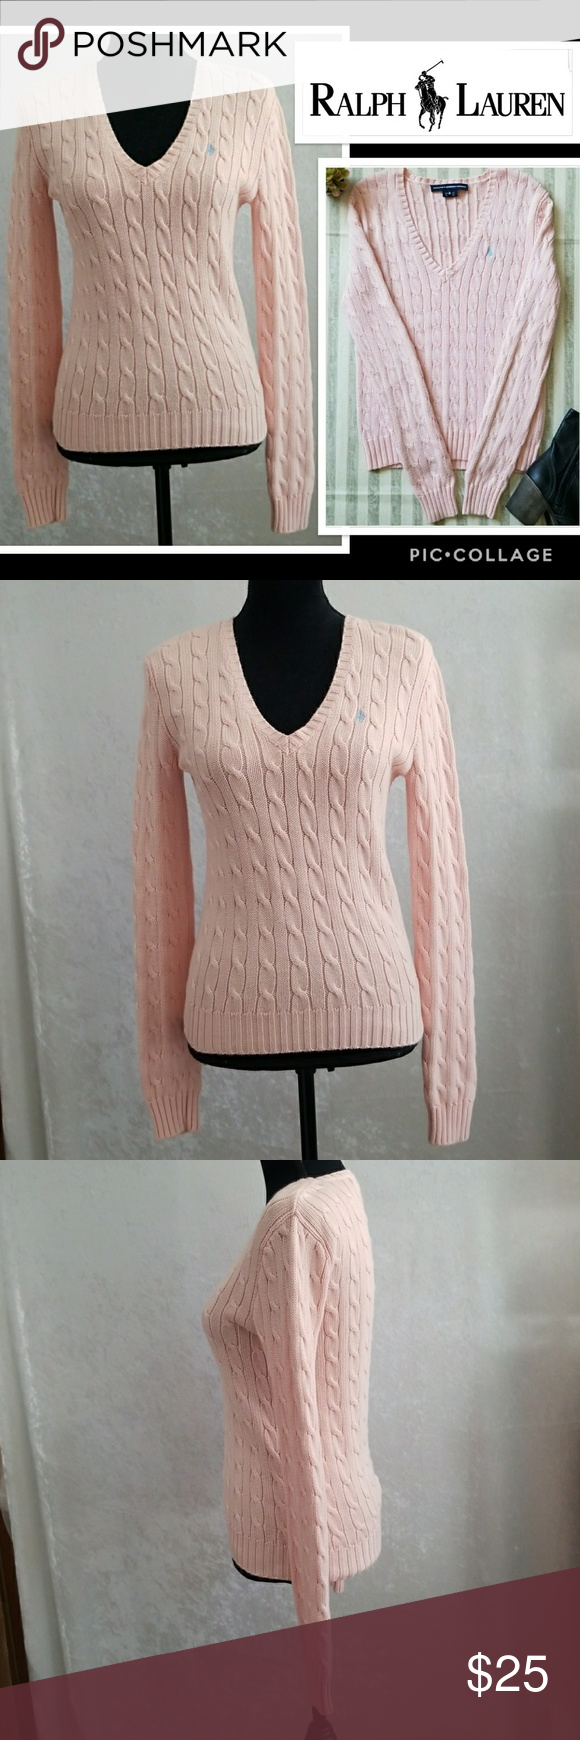 Ralph Lauren Light Pink Cable Knit Sweater